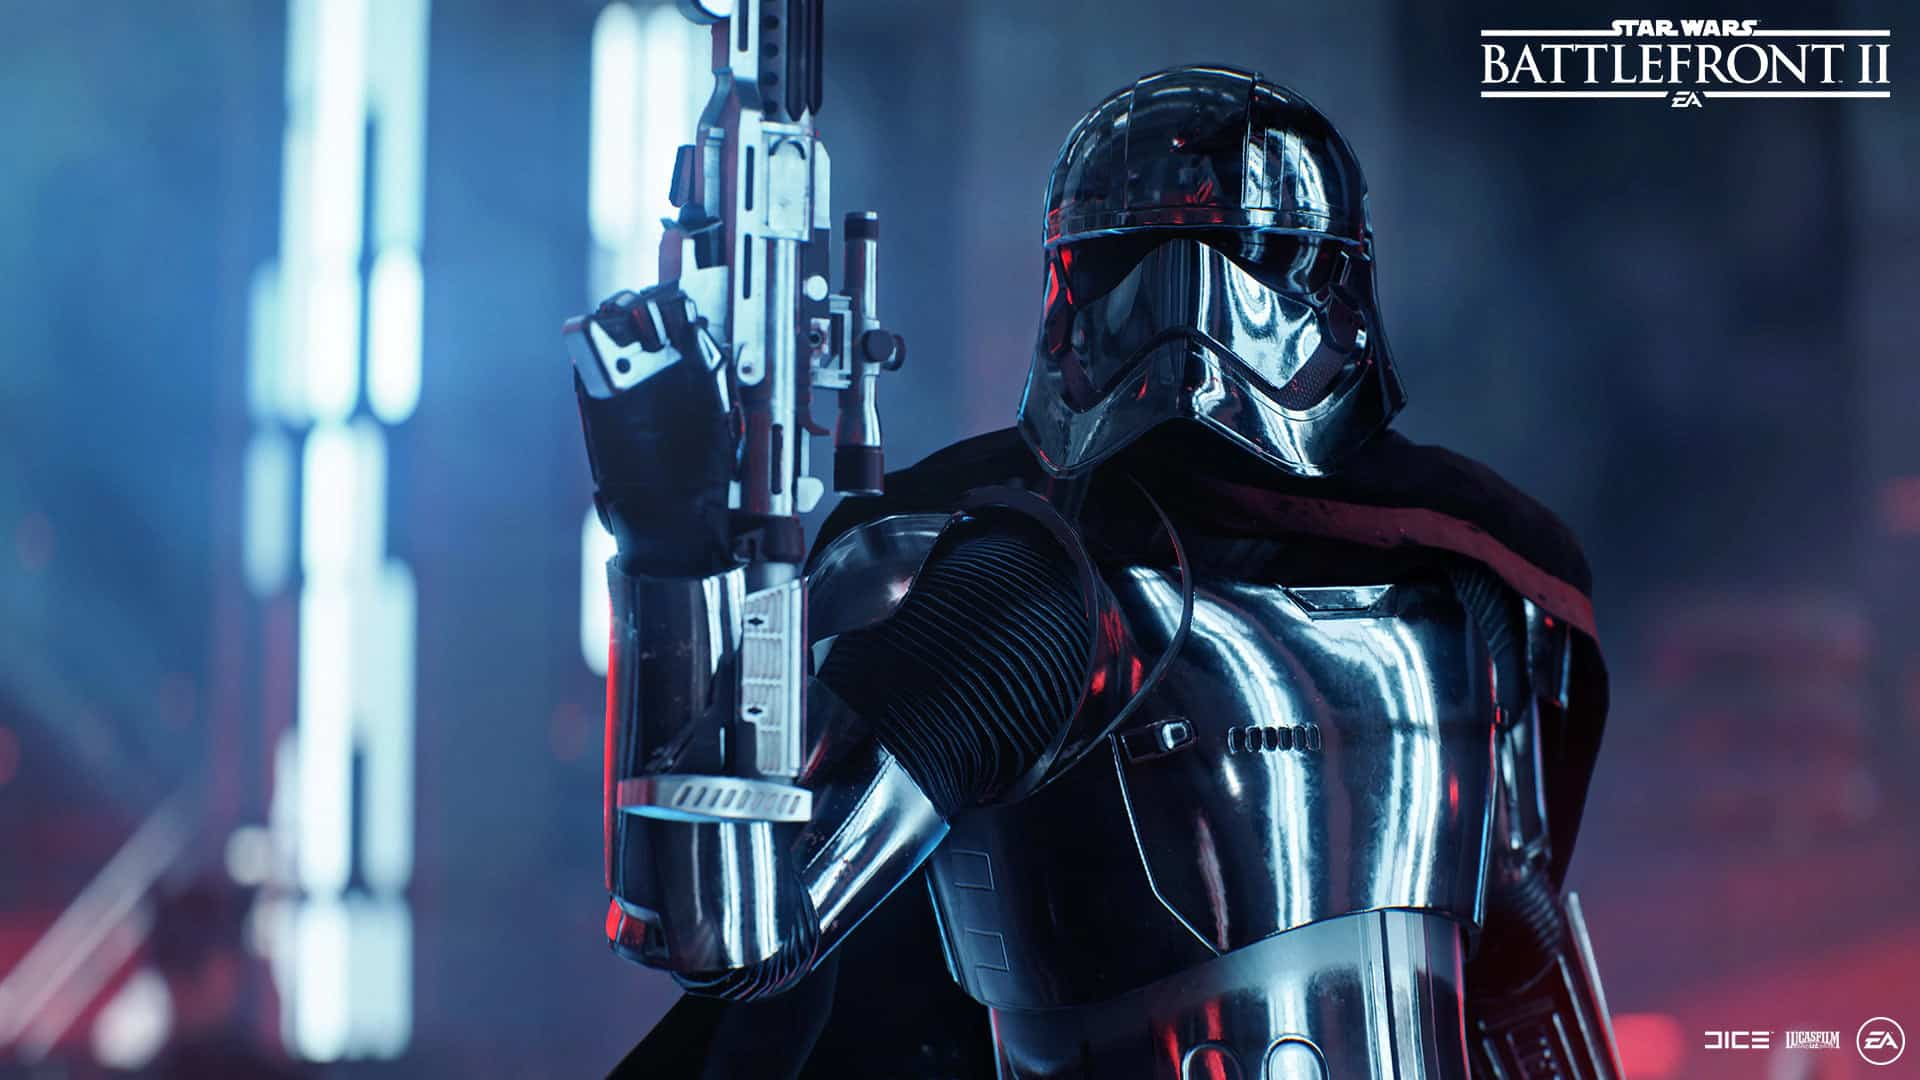 Star Wars Battlefront II heroes villains are faithful and representations in actions and behavior